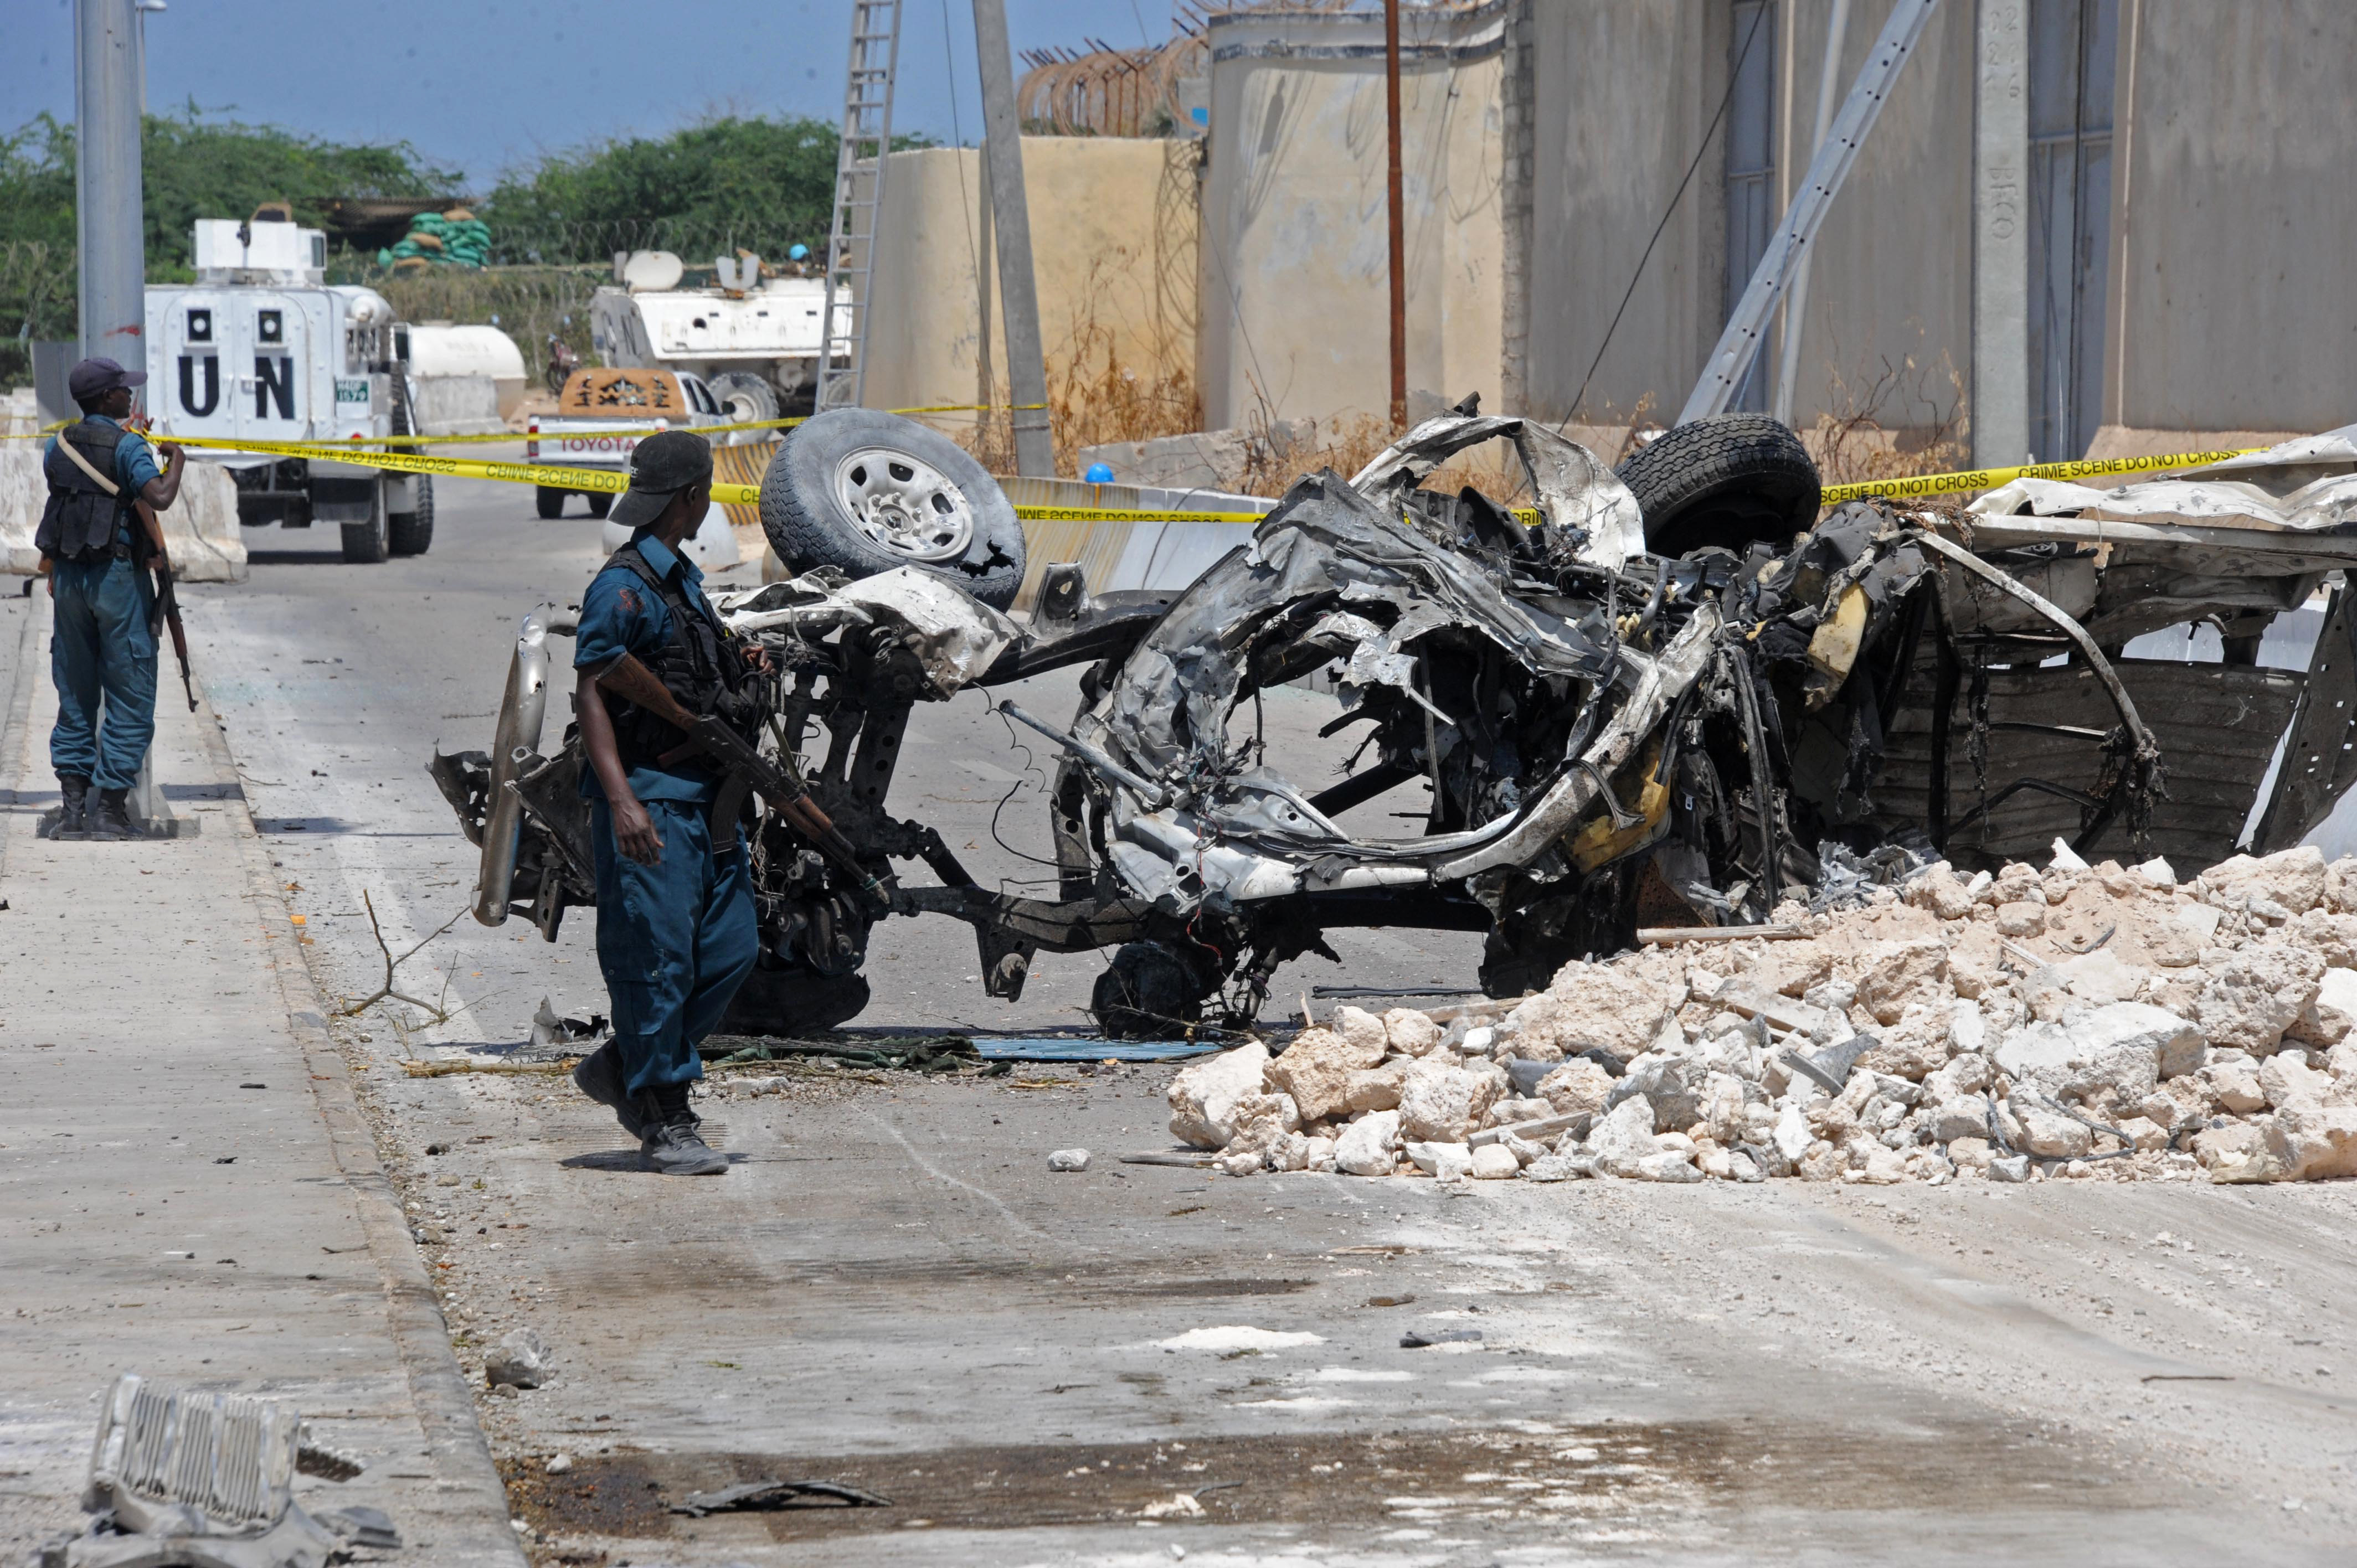 Somali soldiers pass near the wreckage of a car bomb outside the UN's office in Mogadishu on July 26, 2016.